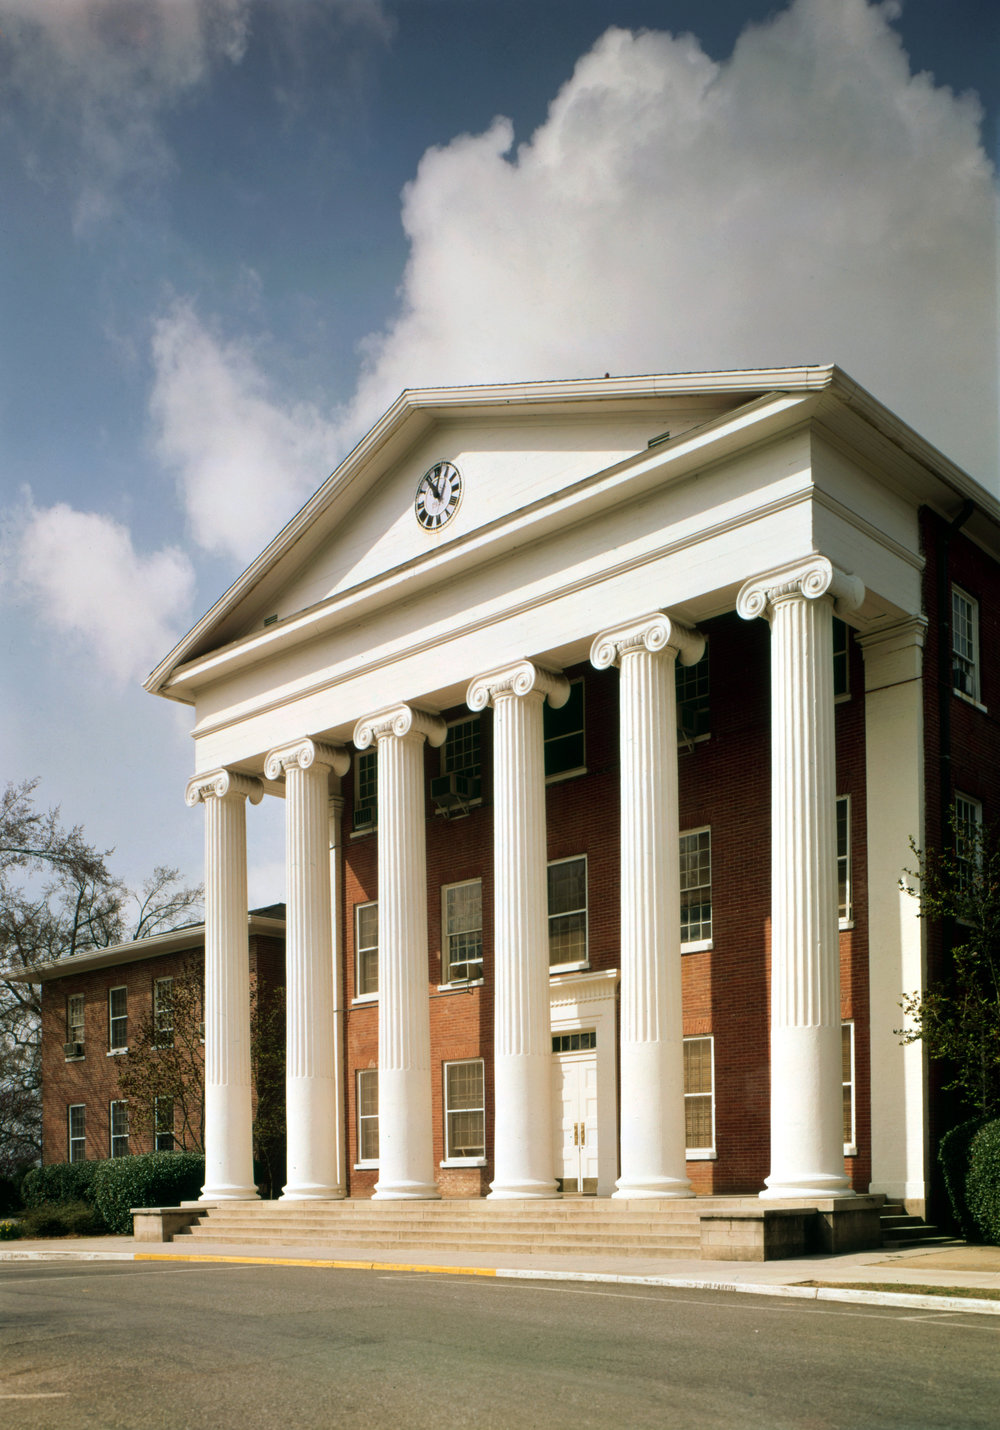 Ole Miss' iconic Lyceum. Built in 1848, there are bullet marks on the columns from the violence that ensued when the school was integrated in 1962 and James Meredith was the first African-American student to enroll.